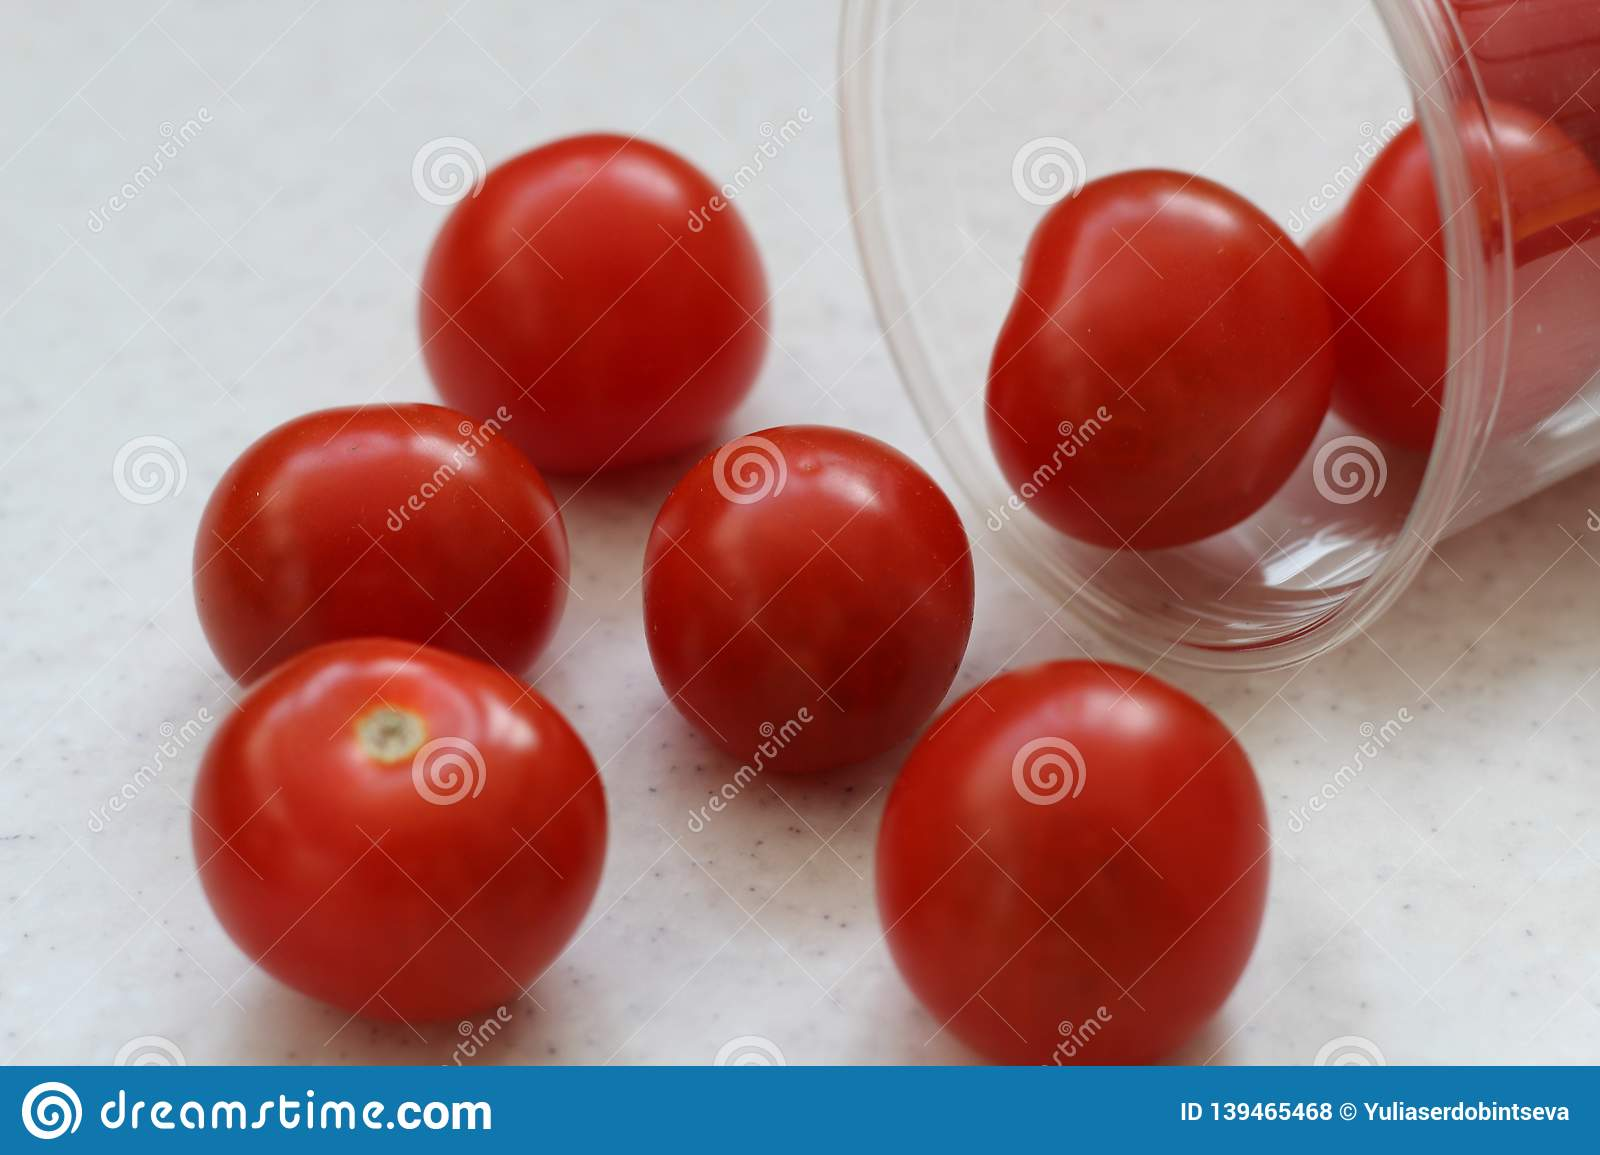 Several red ripe cherry tomatoes rolled out of a plastic transparent glass